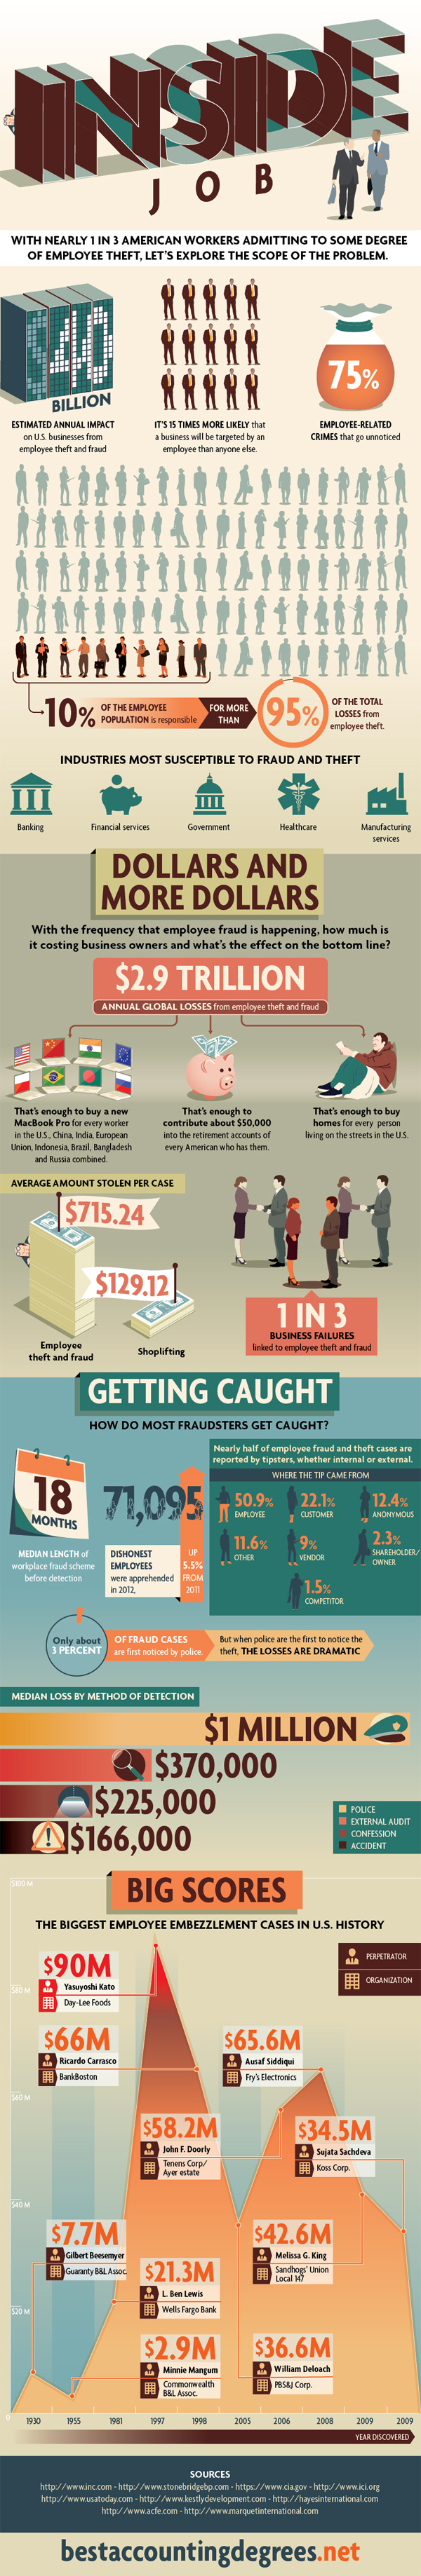 Employee Fraud Statistics-Infographic